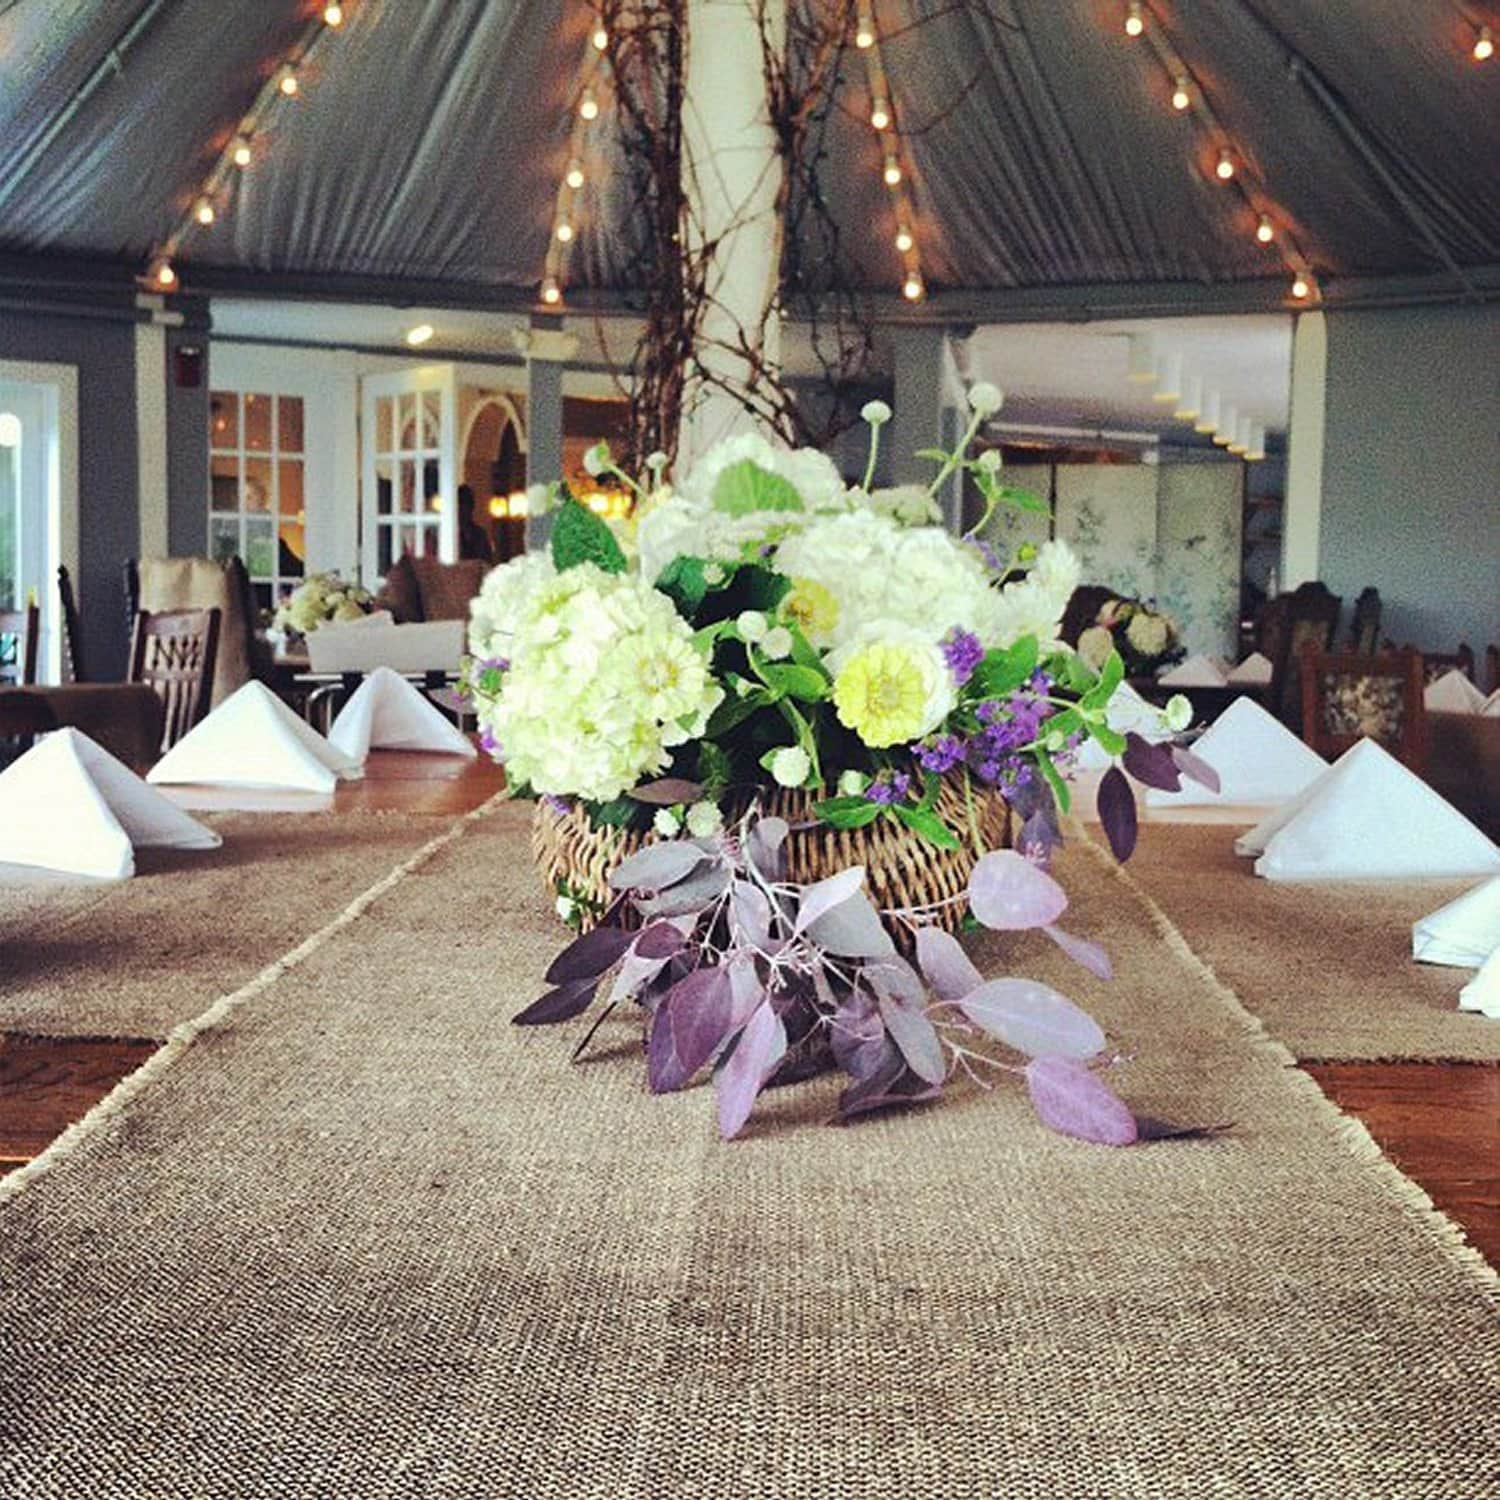 108 Long Burlap Table Runner Rustic Style Wedding Decor